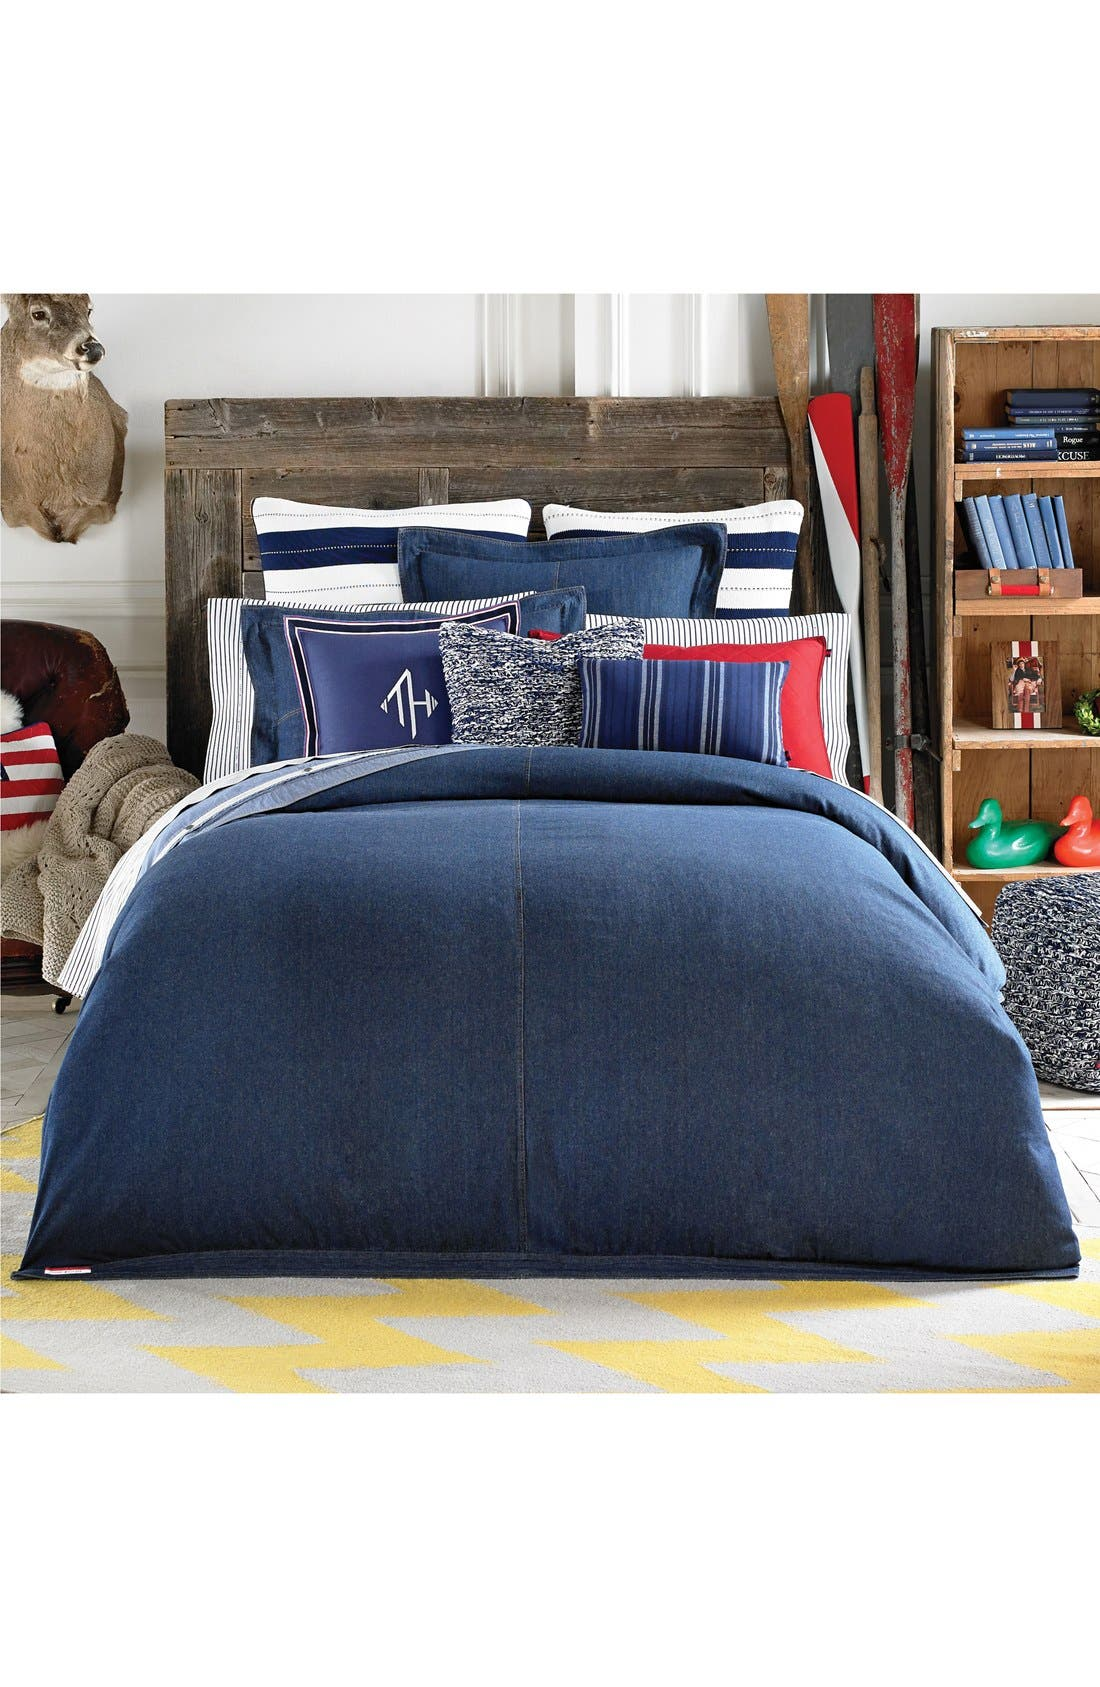 Denim Comforter,                         Main,                         color, Navy